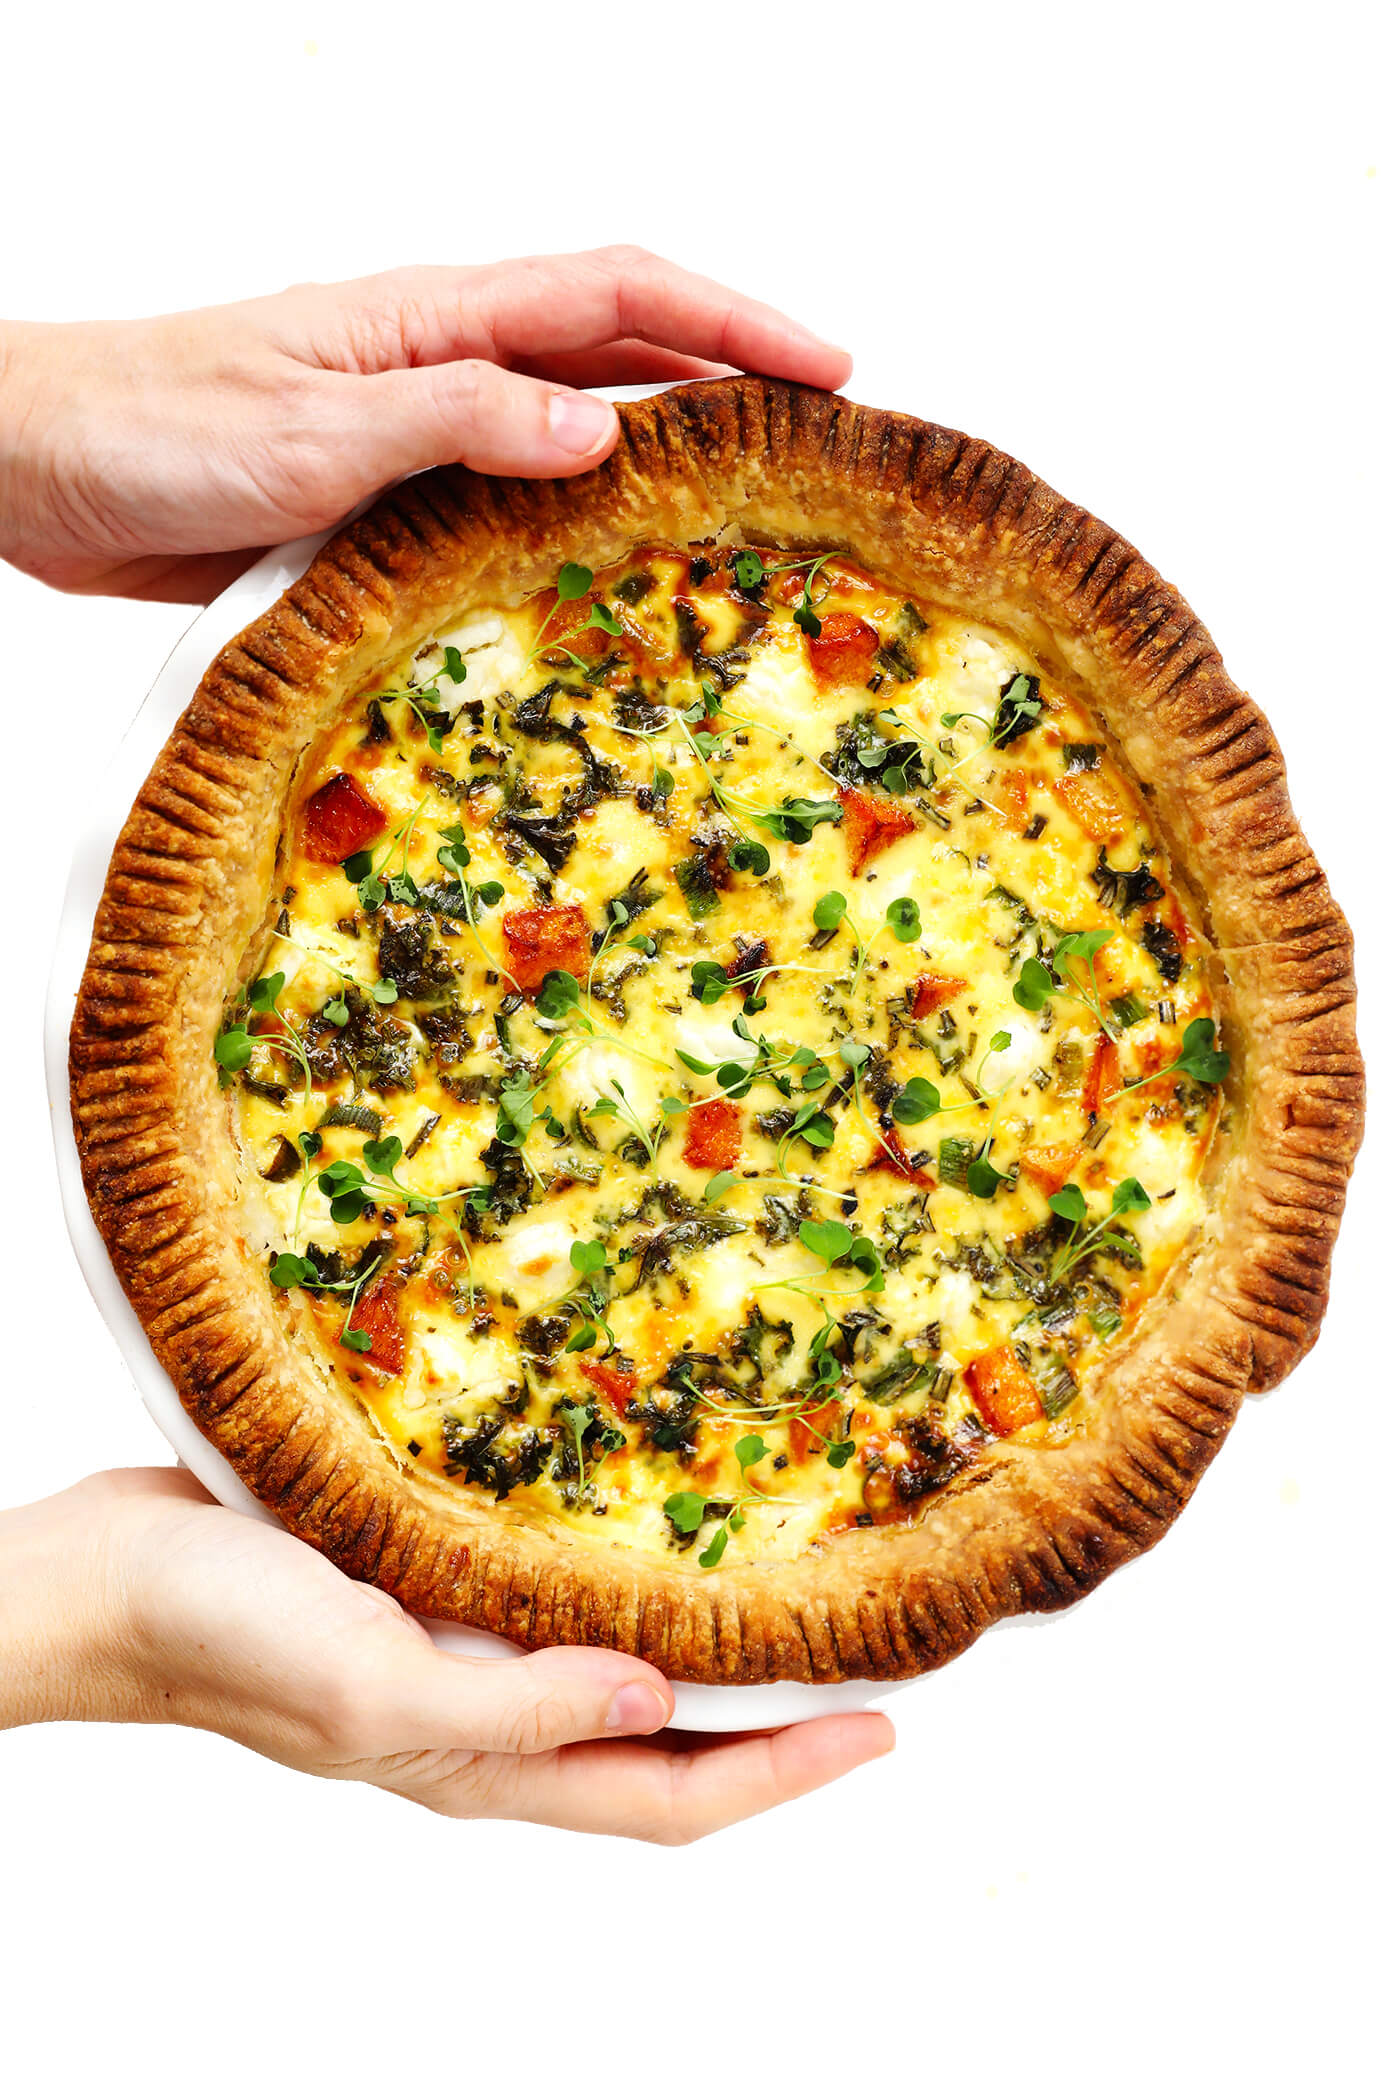 Holding a whole pan of Butternut Squash, Kale and Goat Cheese Quiche